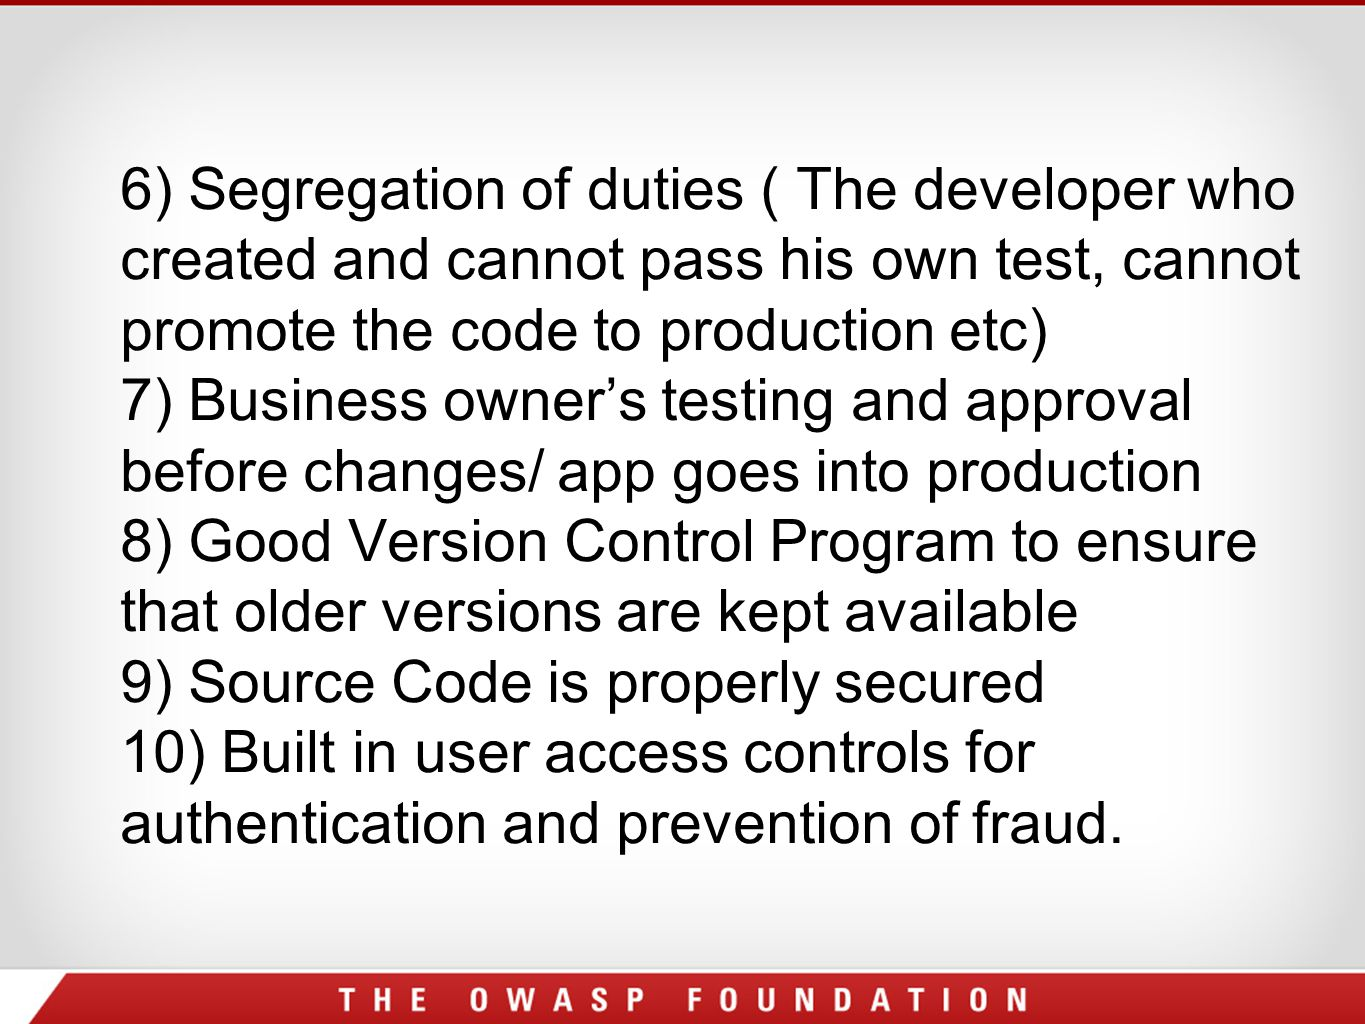 6) Segregation of duties ( The developer who created and cannot pass his own test, cannot promote the code to production etc) 7) Business owner's testing and approval before changes/ app goes into production 8) Good Version Control Program to ensure that older versions are kept available 9) Source Code is properly secured 10) Built in user access controls for authentication and prevention of fraud.